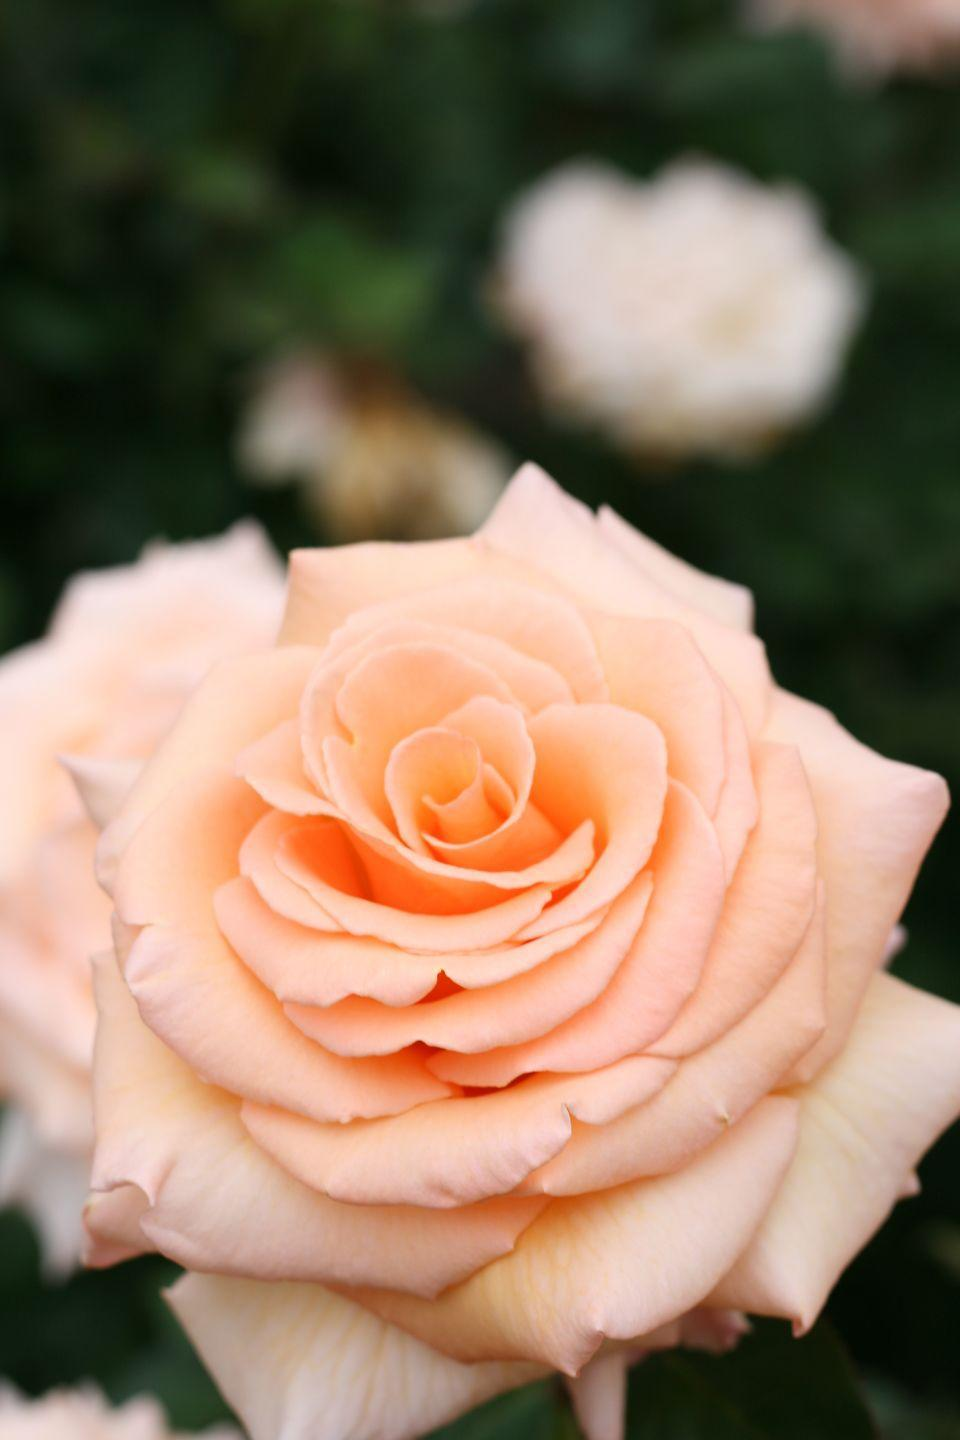 """<p>Sweet and understated, this variety signifies <a href=""""https://www.fiftyflowers.com/blog/rose-color-meanings/"""" rel=""""nofollow noopener"""" target=""""_blank"""" data-ylk=""""slk:modesty, sincerity, and gratitude."""" class=""""link rapid-noclick-resp"""">modesty, sincerity, and gratitude.</a> Send these flowers in place of a thank you note to tell people how you really feel. </p><p><a class=""""link rapid-noclick-resp"""" href=""""https://go.redirectingat.com?id=74968X1596630&url=https%3A%2F%2Fwww.ftd.com%2Fballad-luxury-bouquet-prd%2Flx188%2F&sref=https%3A%2F%2Fwww.goodhousekeeping.com%2Fholidays%2Fvalentines-day-ideas%2Fg1352%2Frose-color-meanings%2F"""" rel=""""nofollow noopener"""" target=""""_blank"""" data-ylk=""""slk:SHOP PEACH ROSES"""">SHOP PEACH ROSES</a></p>"""